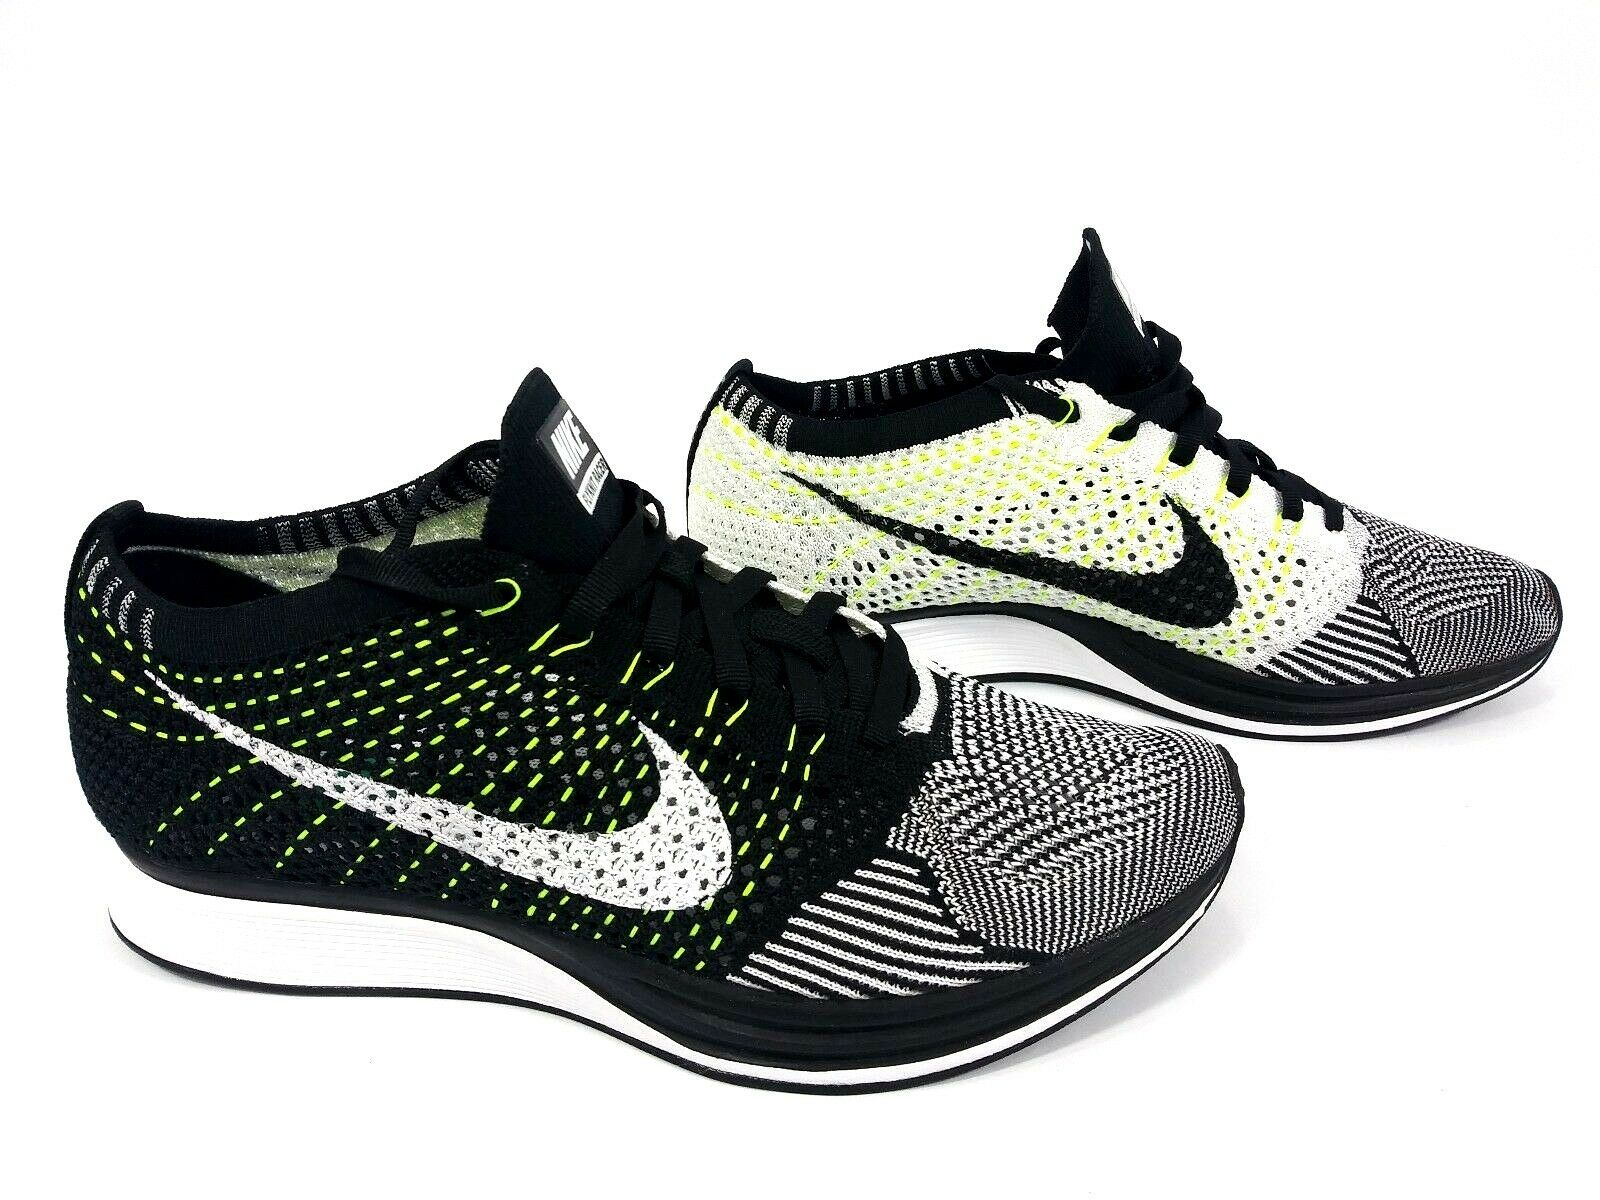 NEW Nike Flyknit Racer Black White-White 526628-011 Size Men's 13